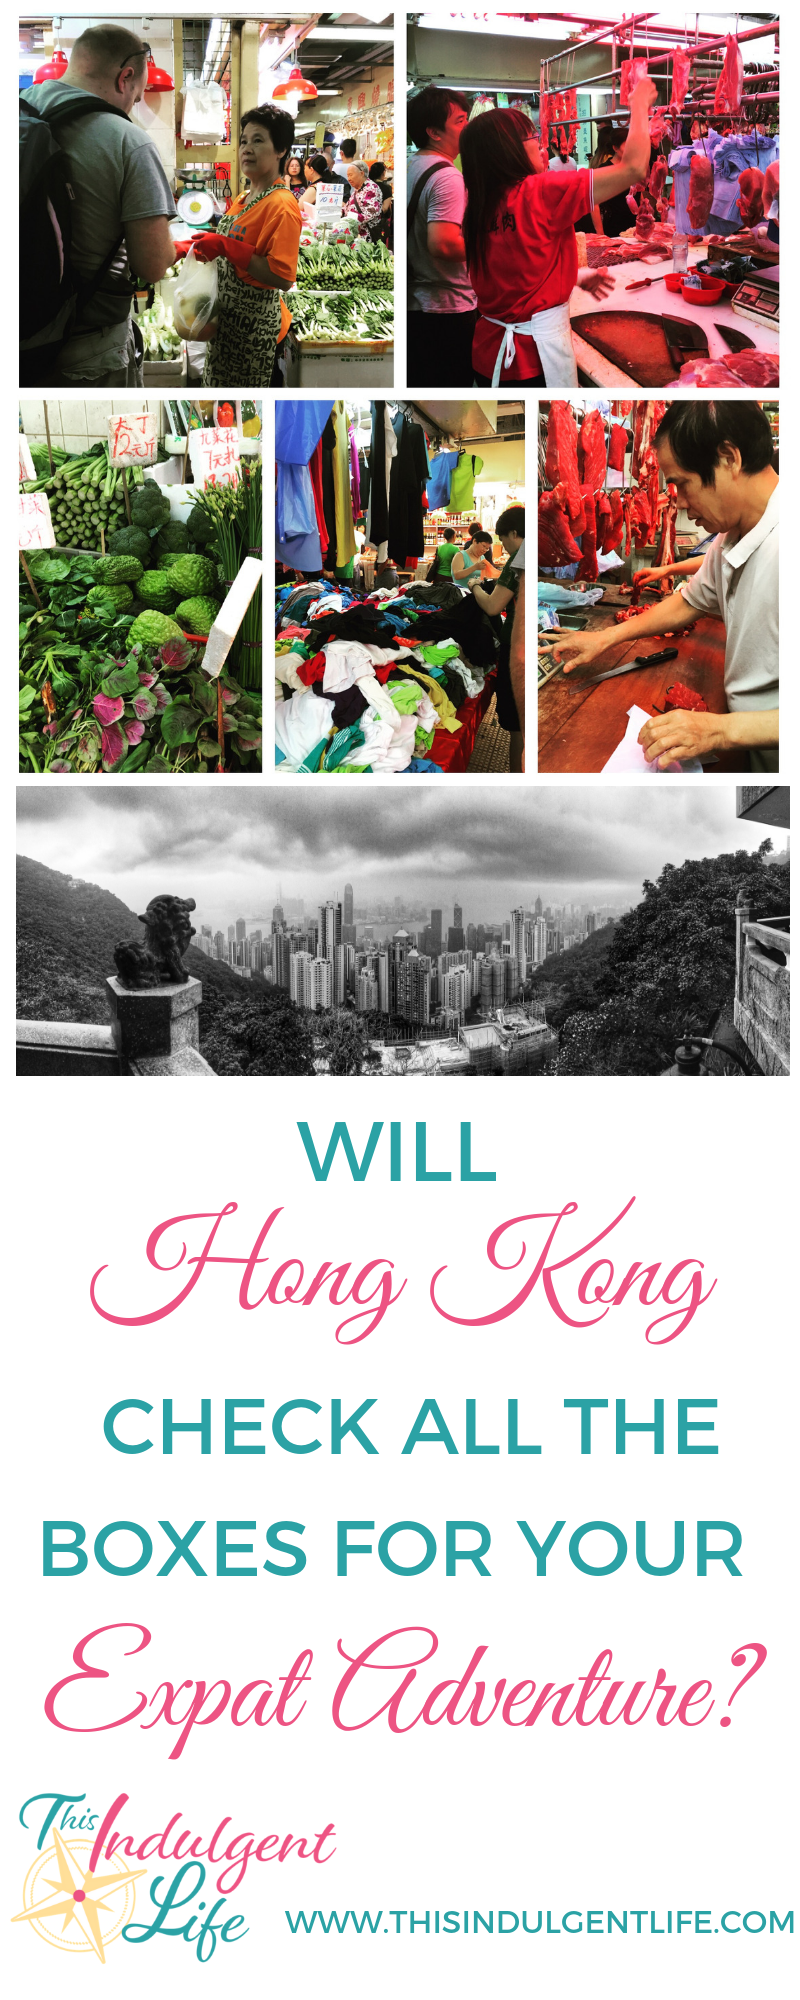 Will Hong Kong check all the boxes for your expat adventure? | This Indulgent Life | I used these 6 questions to help guide us to choosing Hong Kong as our new home overseas. But what country is right for you and your family? Download the free workbook and answer the questions to help you decide what's best for you! | #expatlife #expatliving #hongkongexpat #overseasliving #familyadventure #familytravel #hongkongtravel #asiatravel